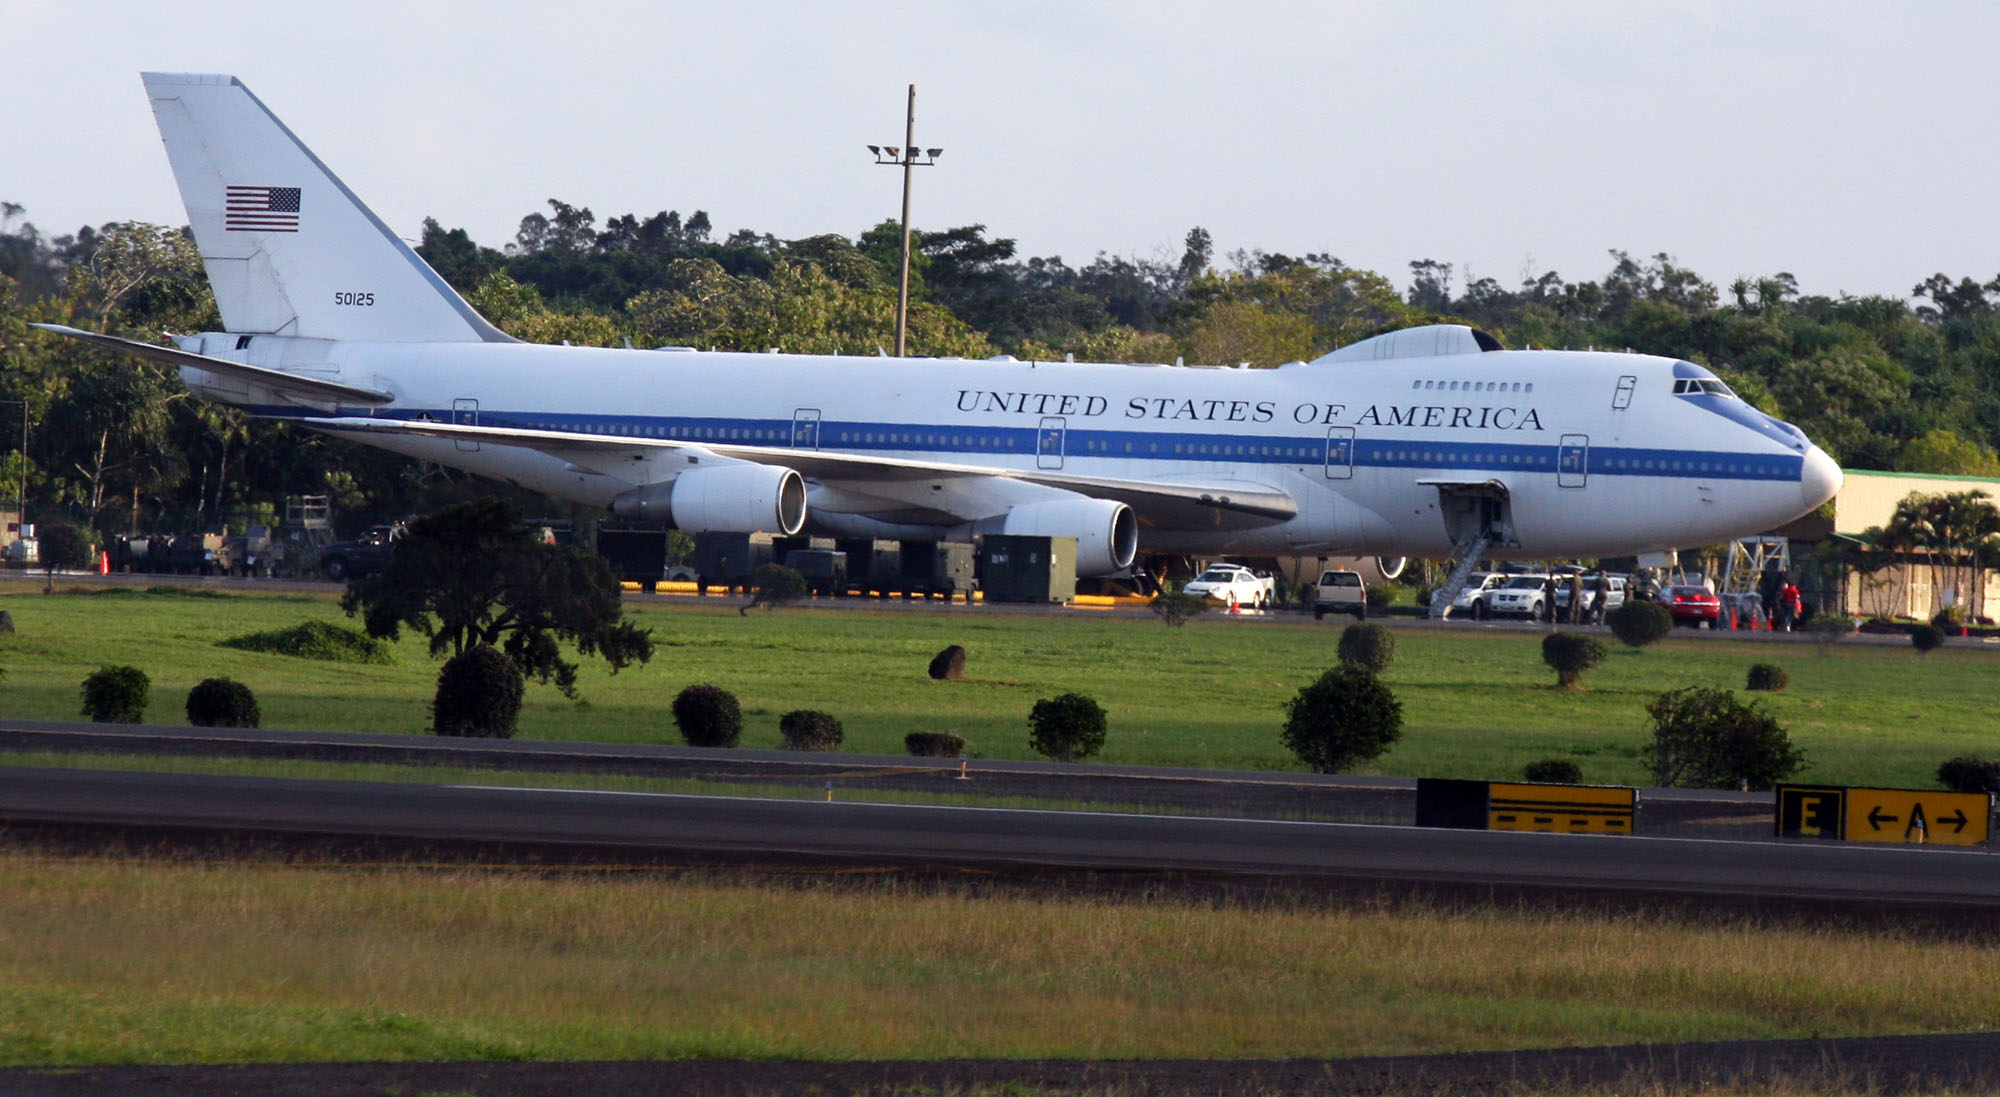 One of President Obama's back-up planes at Hilo International Aiport Tursday (Dec 24) as he visits Oahu on vacation.